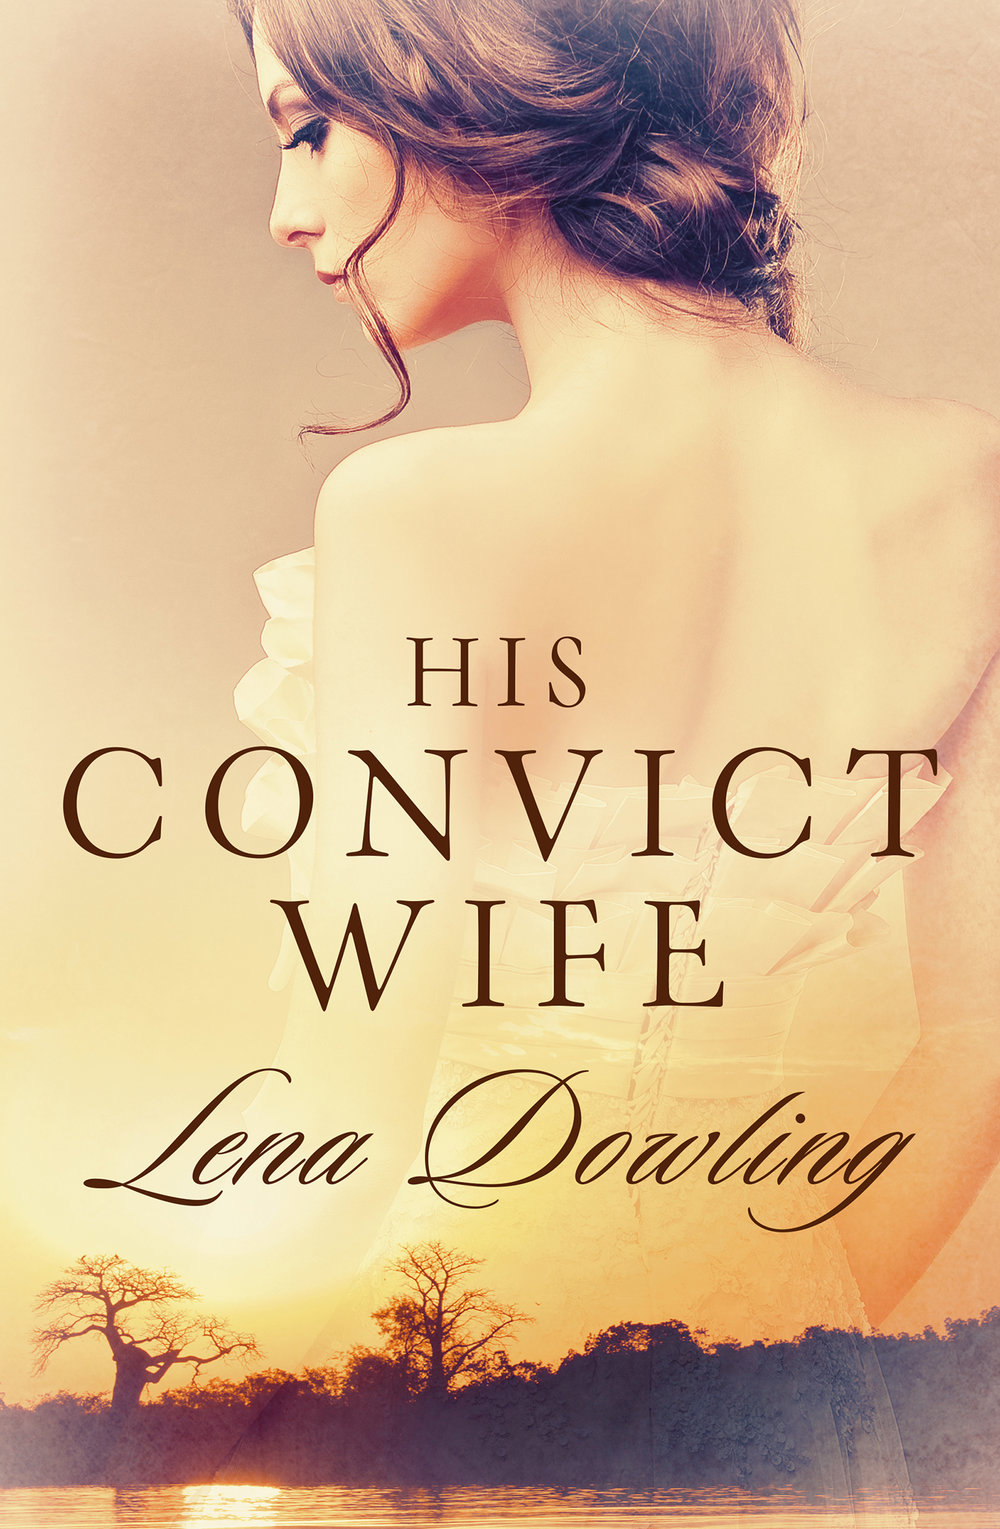 1213 His Convict Wife_1400.jpg